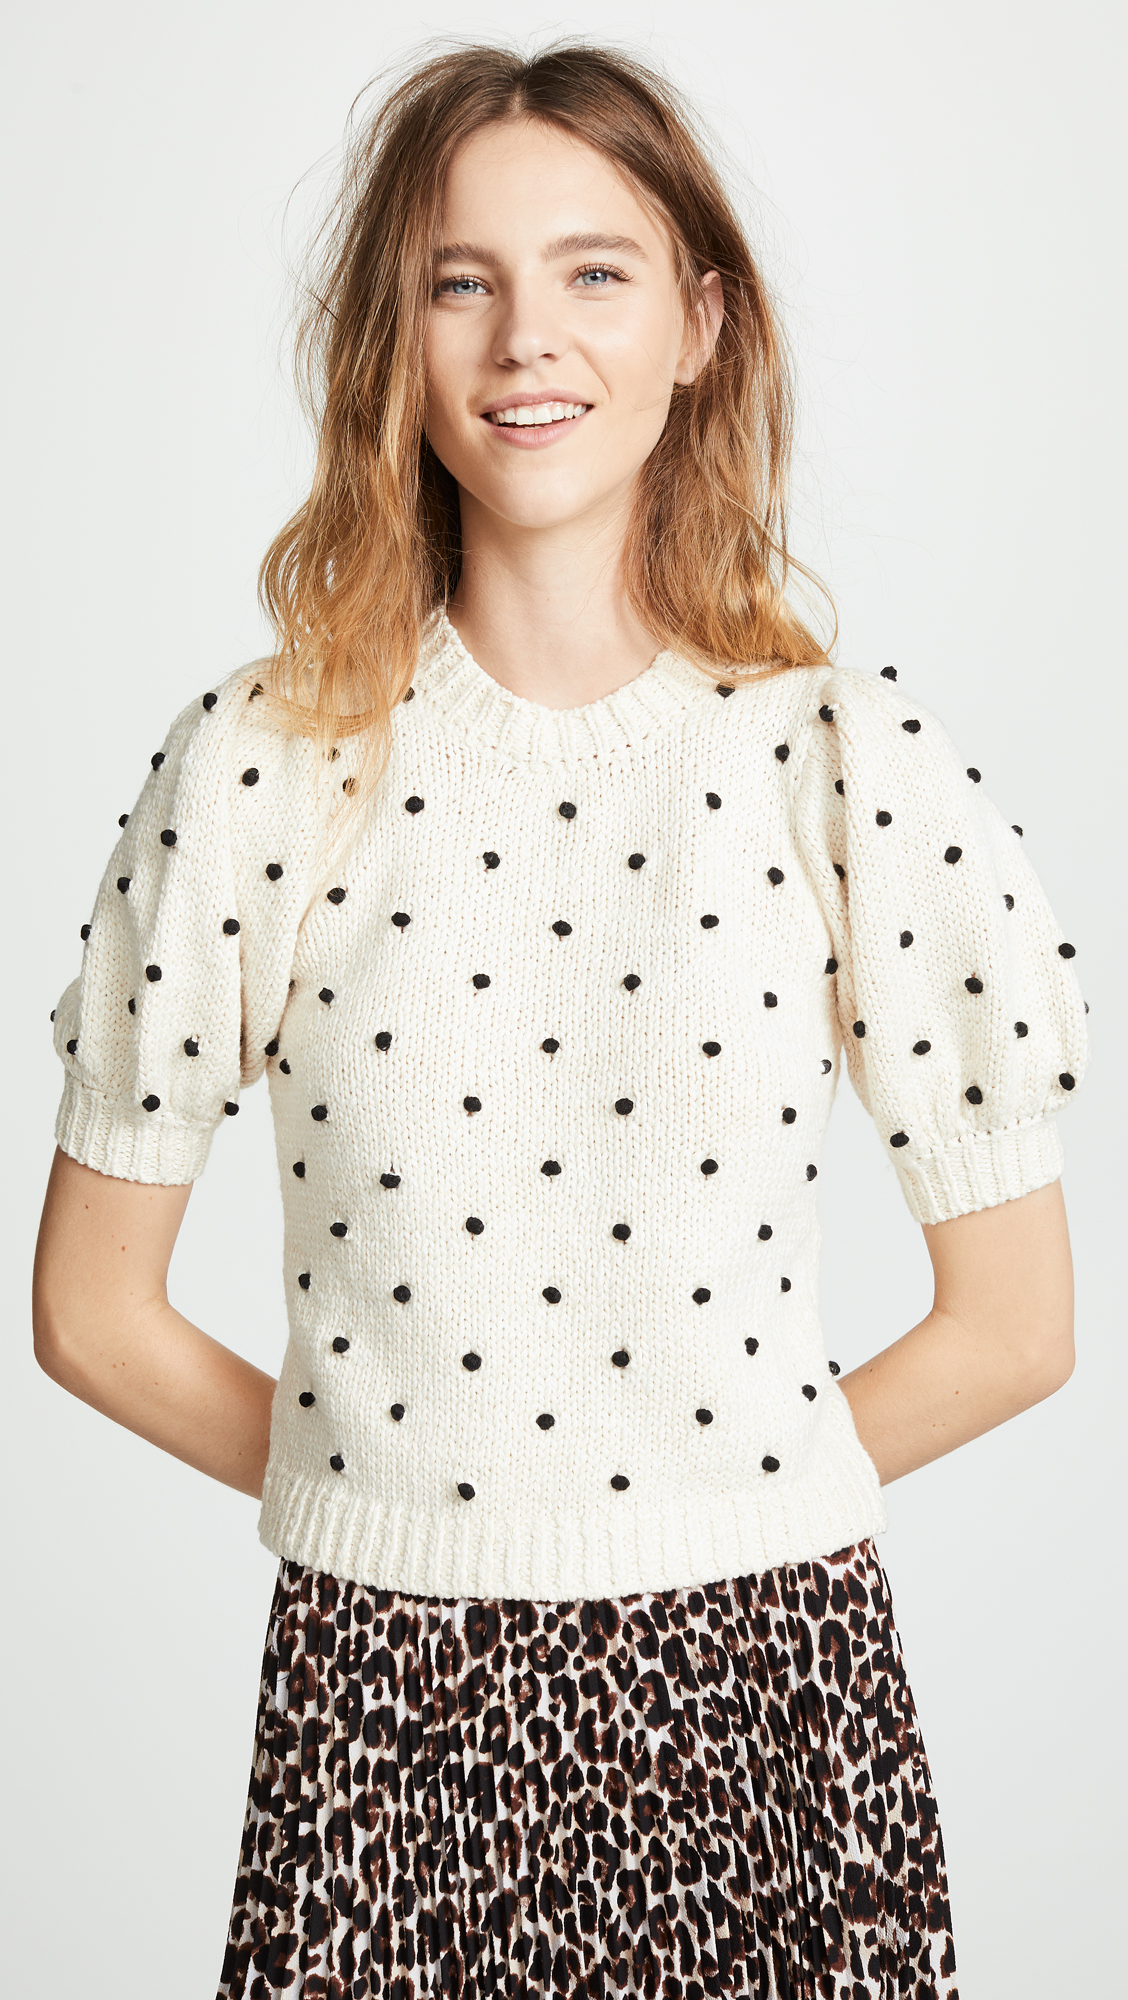 Polka Dot Embroidered Short Sleeve Sweater Black and White